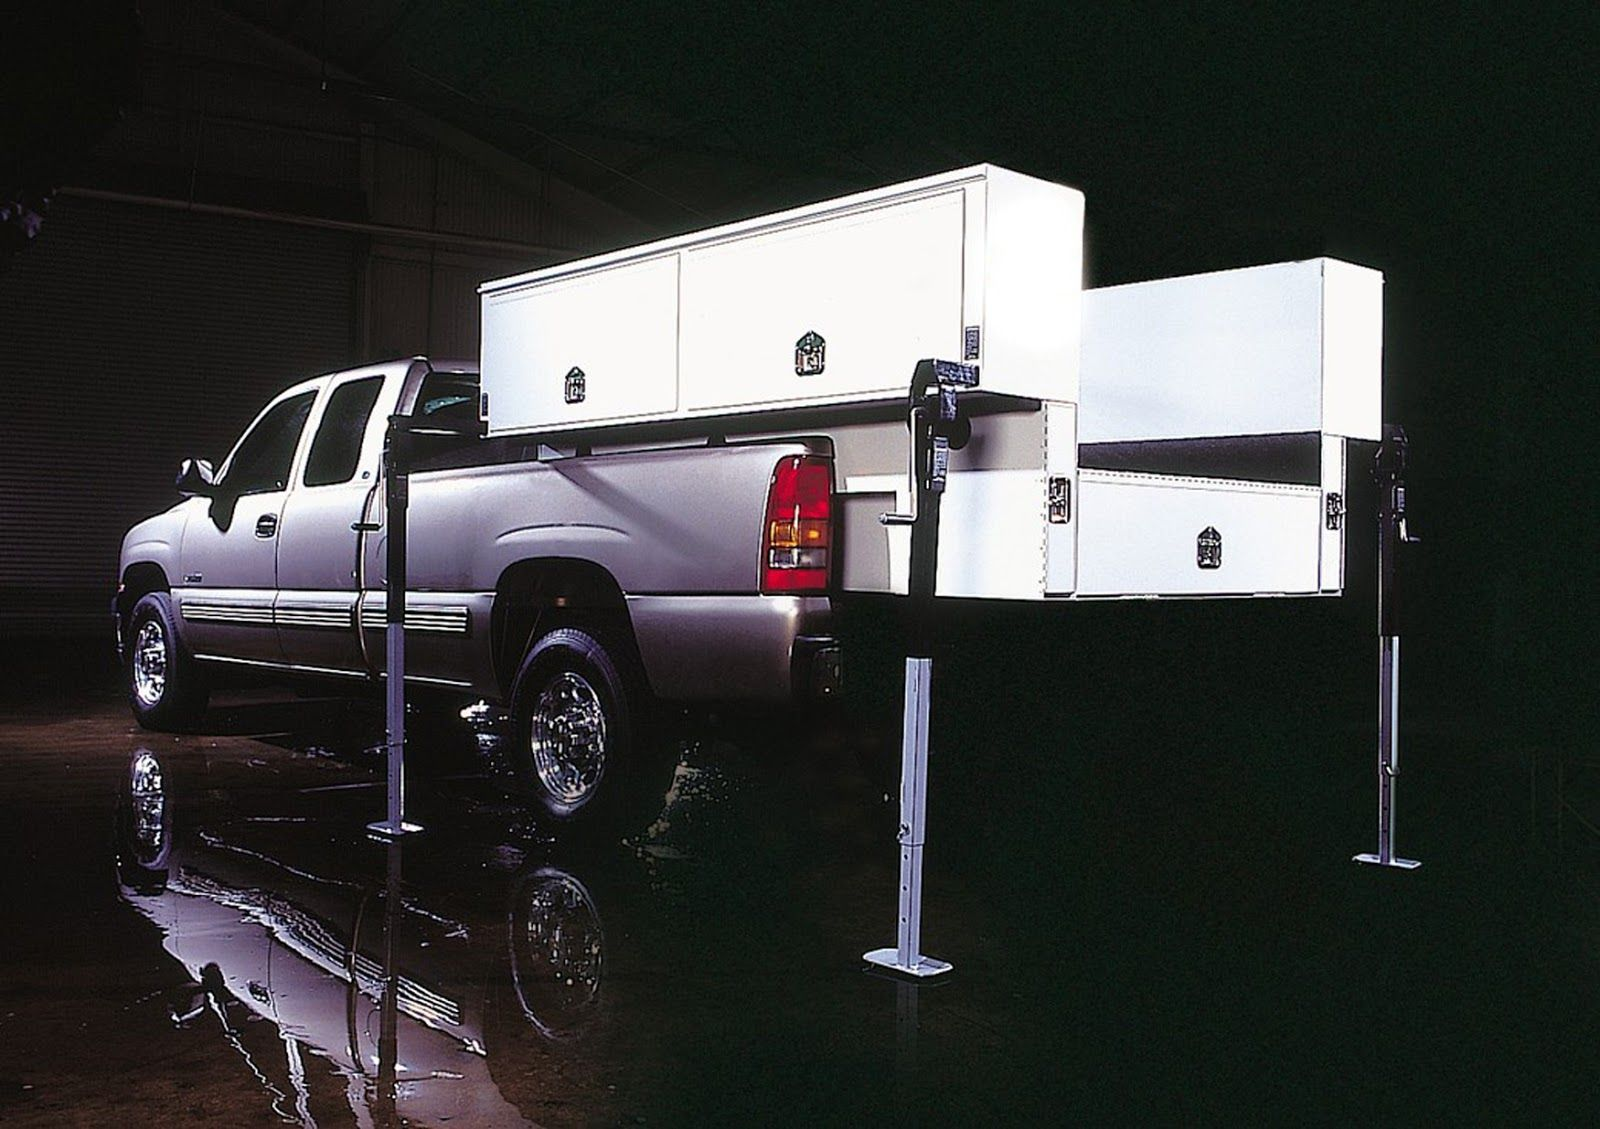 Utility Beds Service Bodies And Tool Boxes For Work Pickup Trucks Work Truck Work Trailer